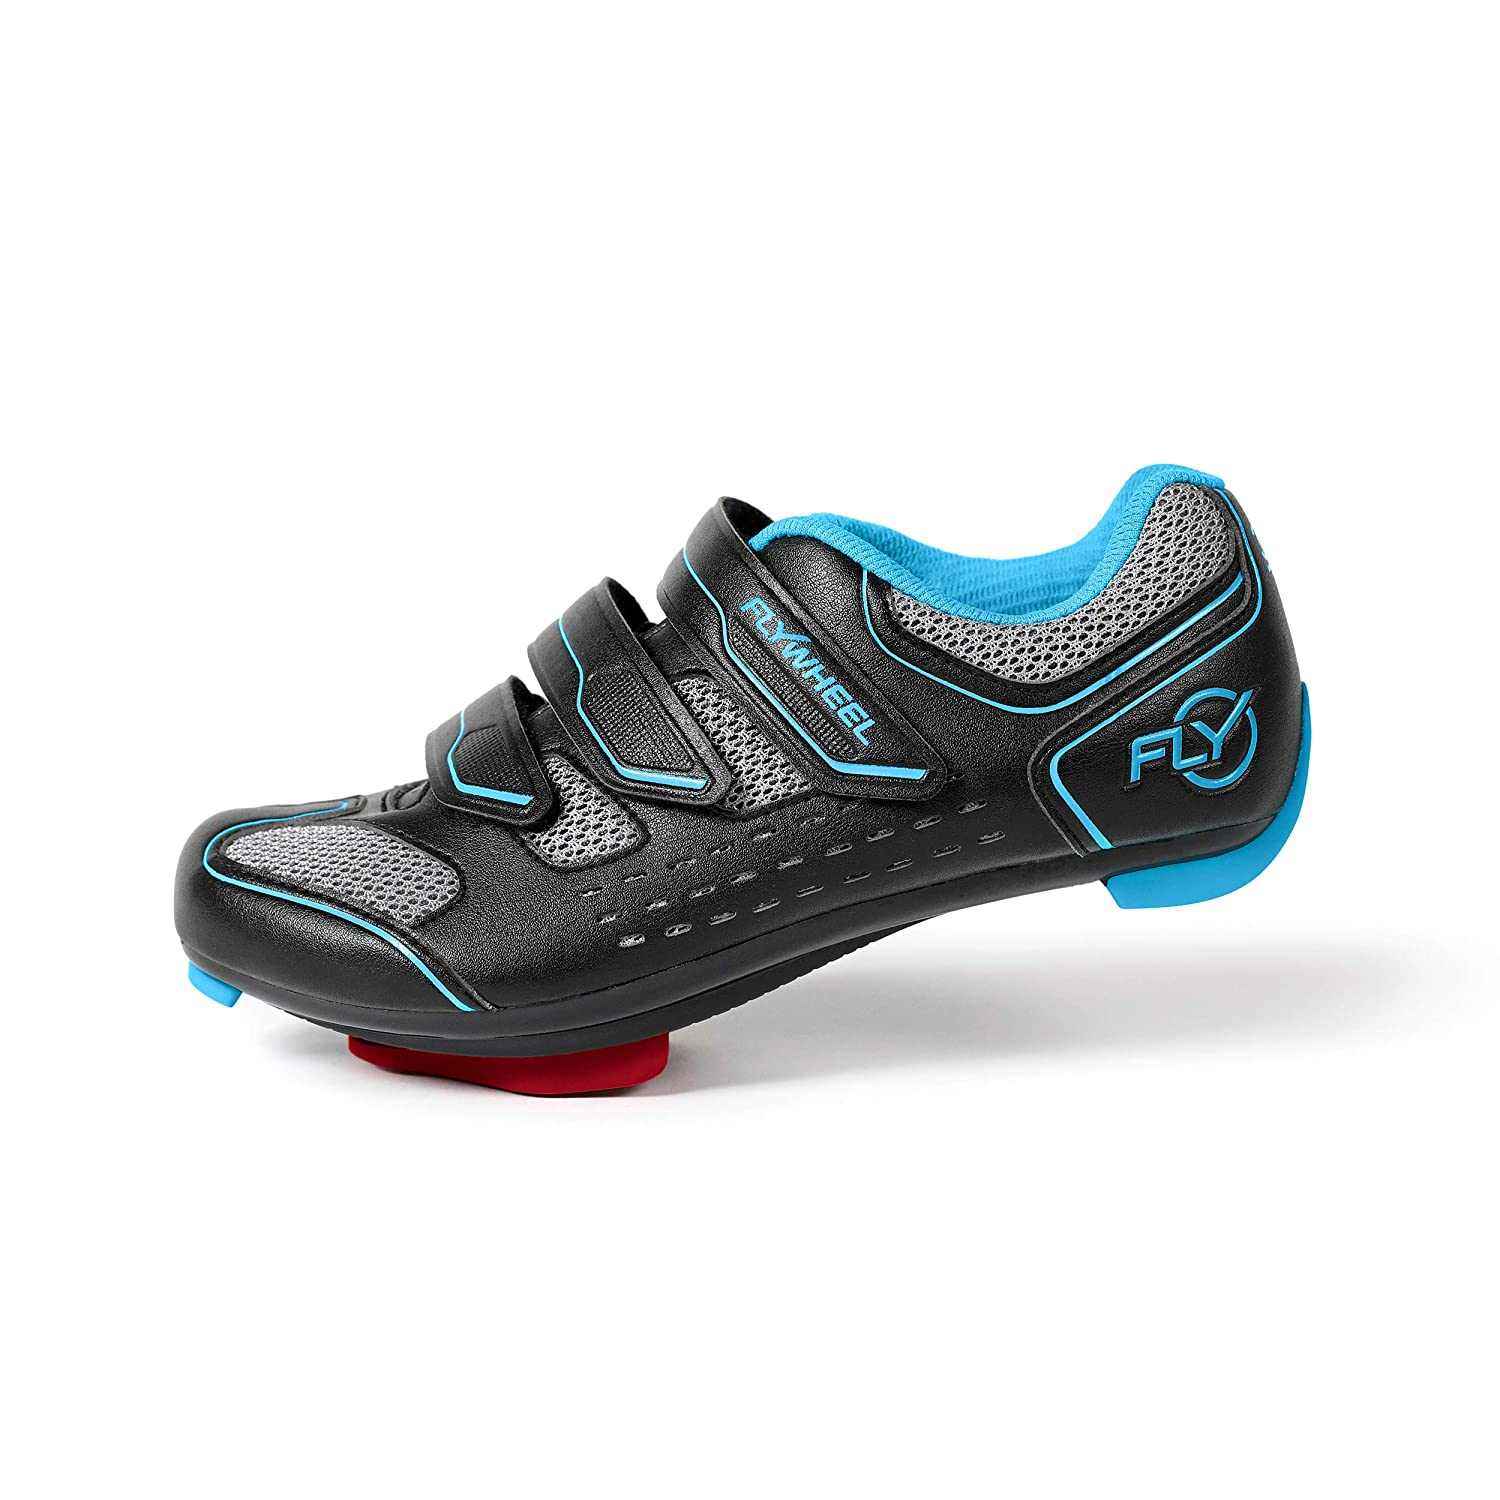 Flywheel Sports Indoor Cycling Shoe with LOOK Delta Cleats – Size 49 US Men s 14